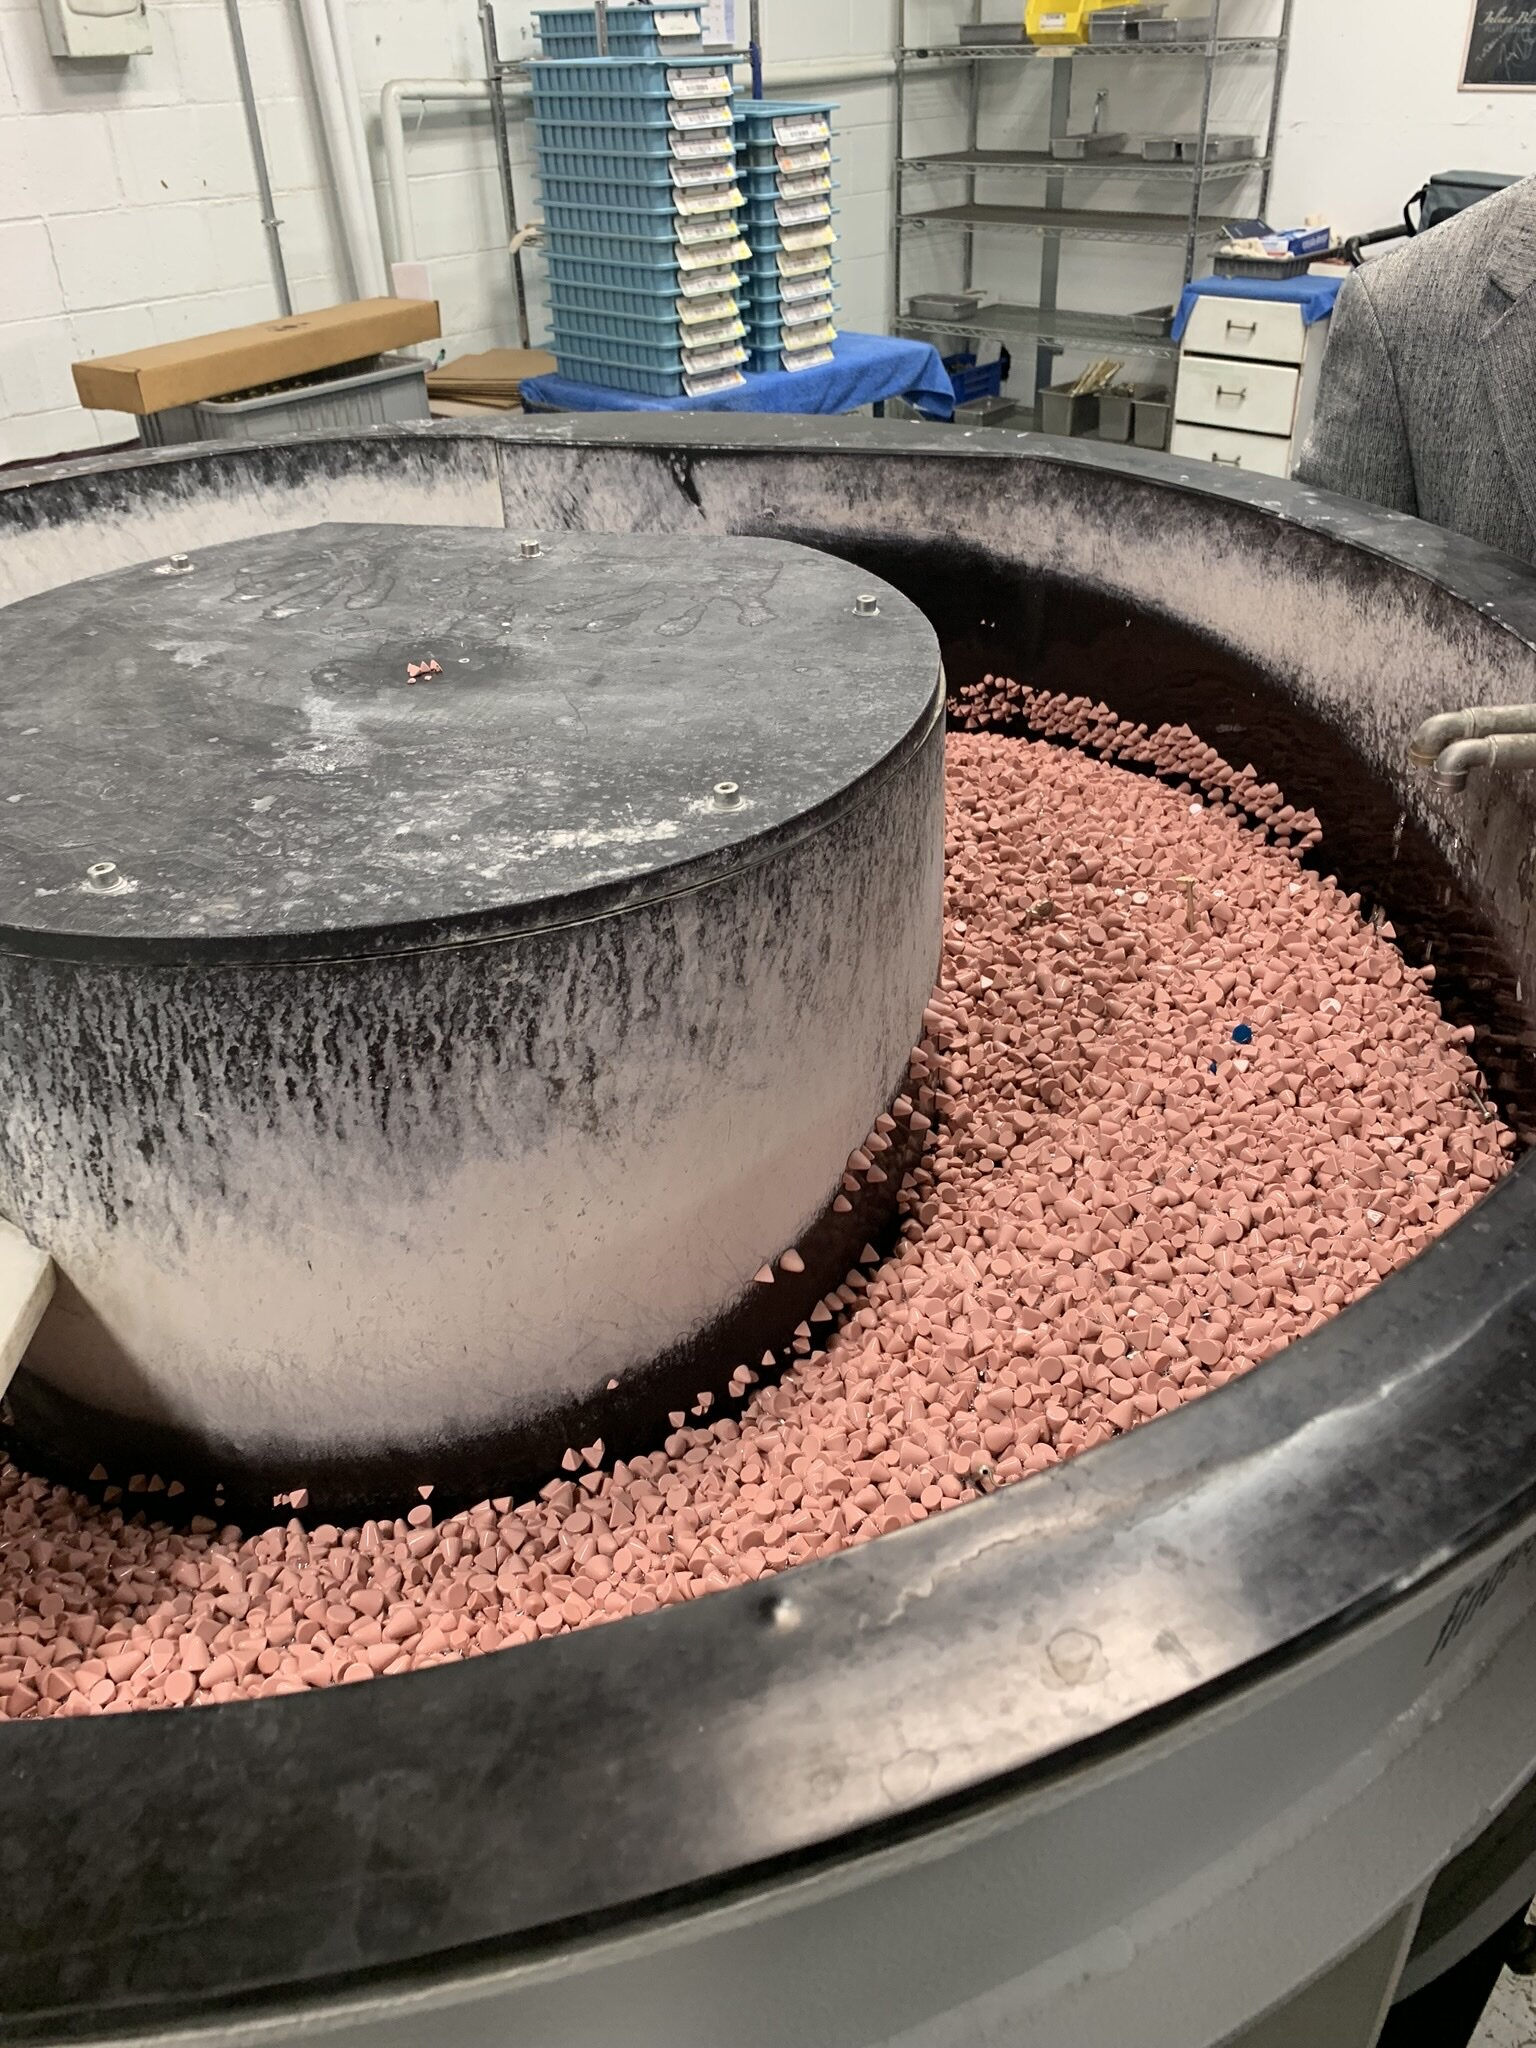 The keys float through these moving polishing rocks to refine the keys prior to assembly.